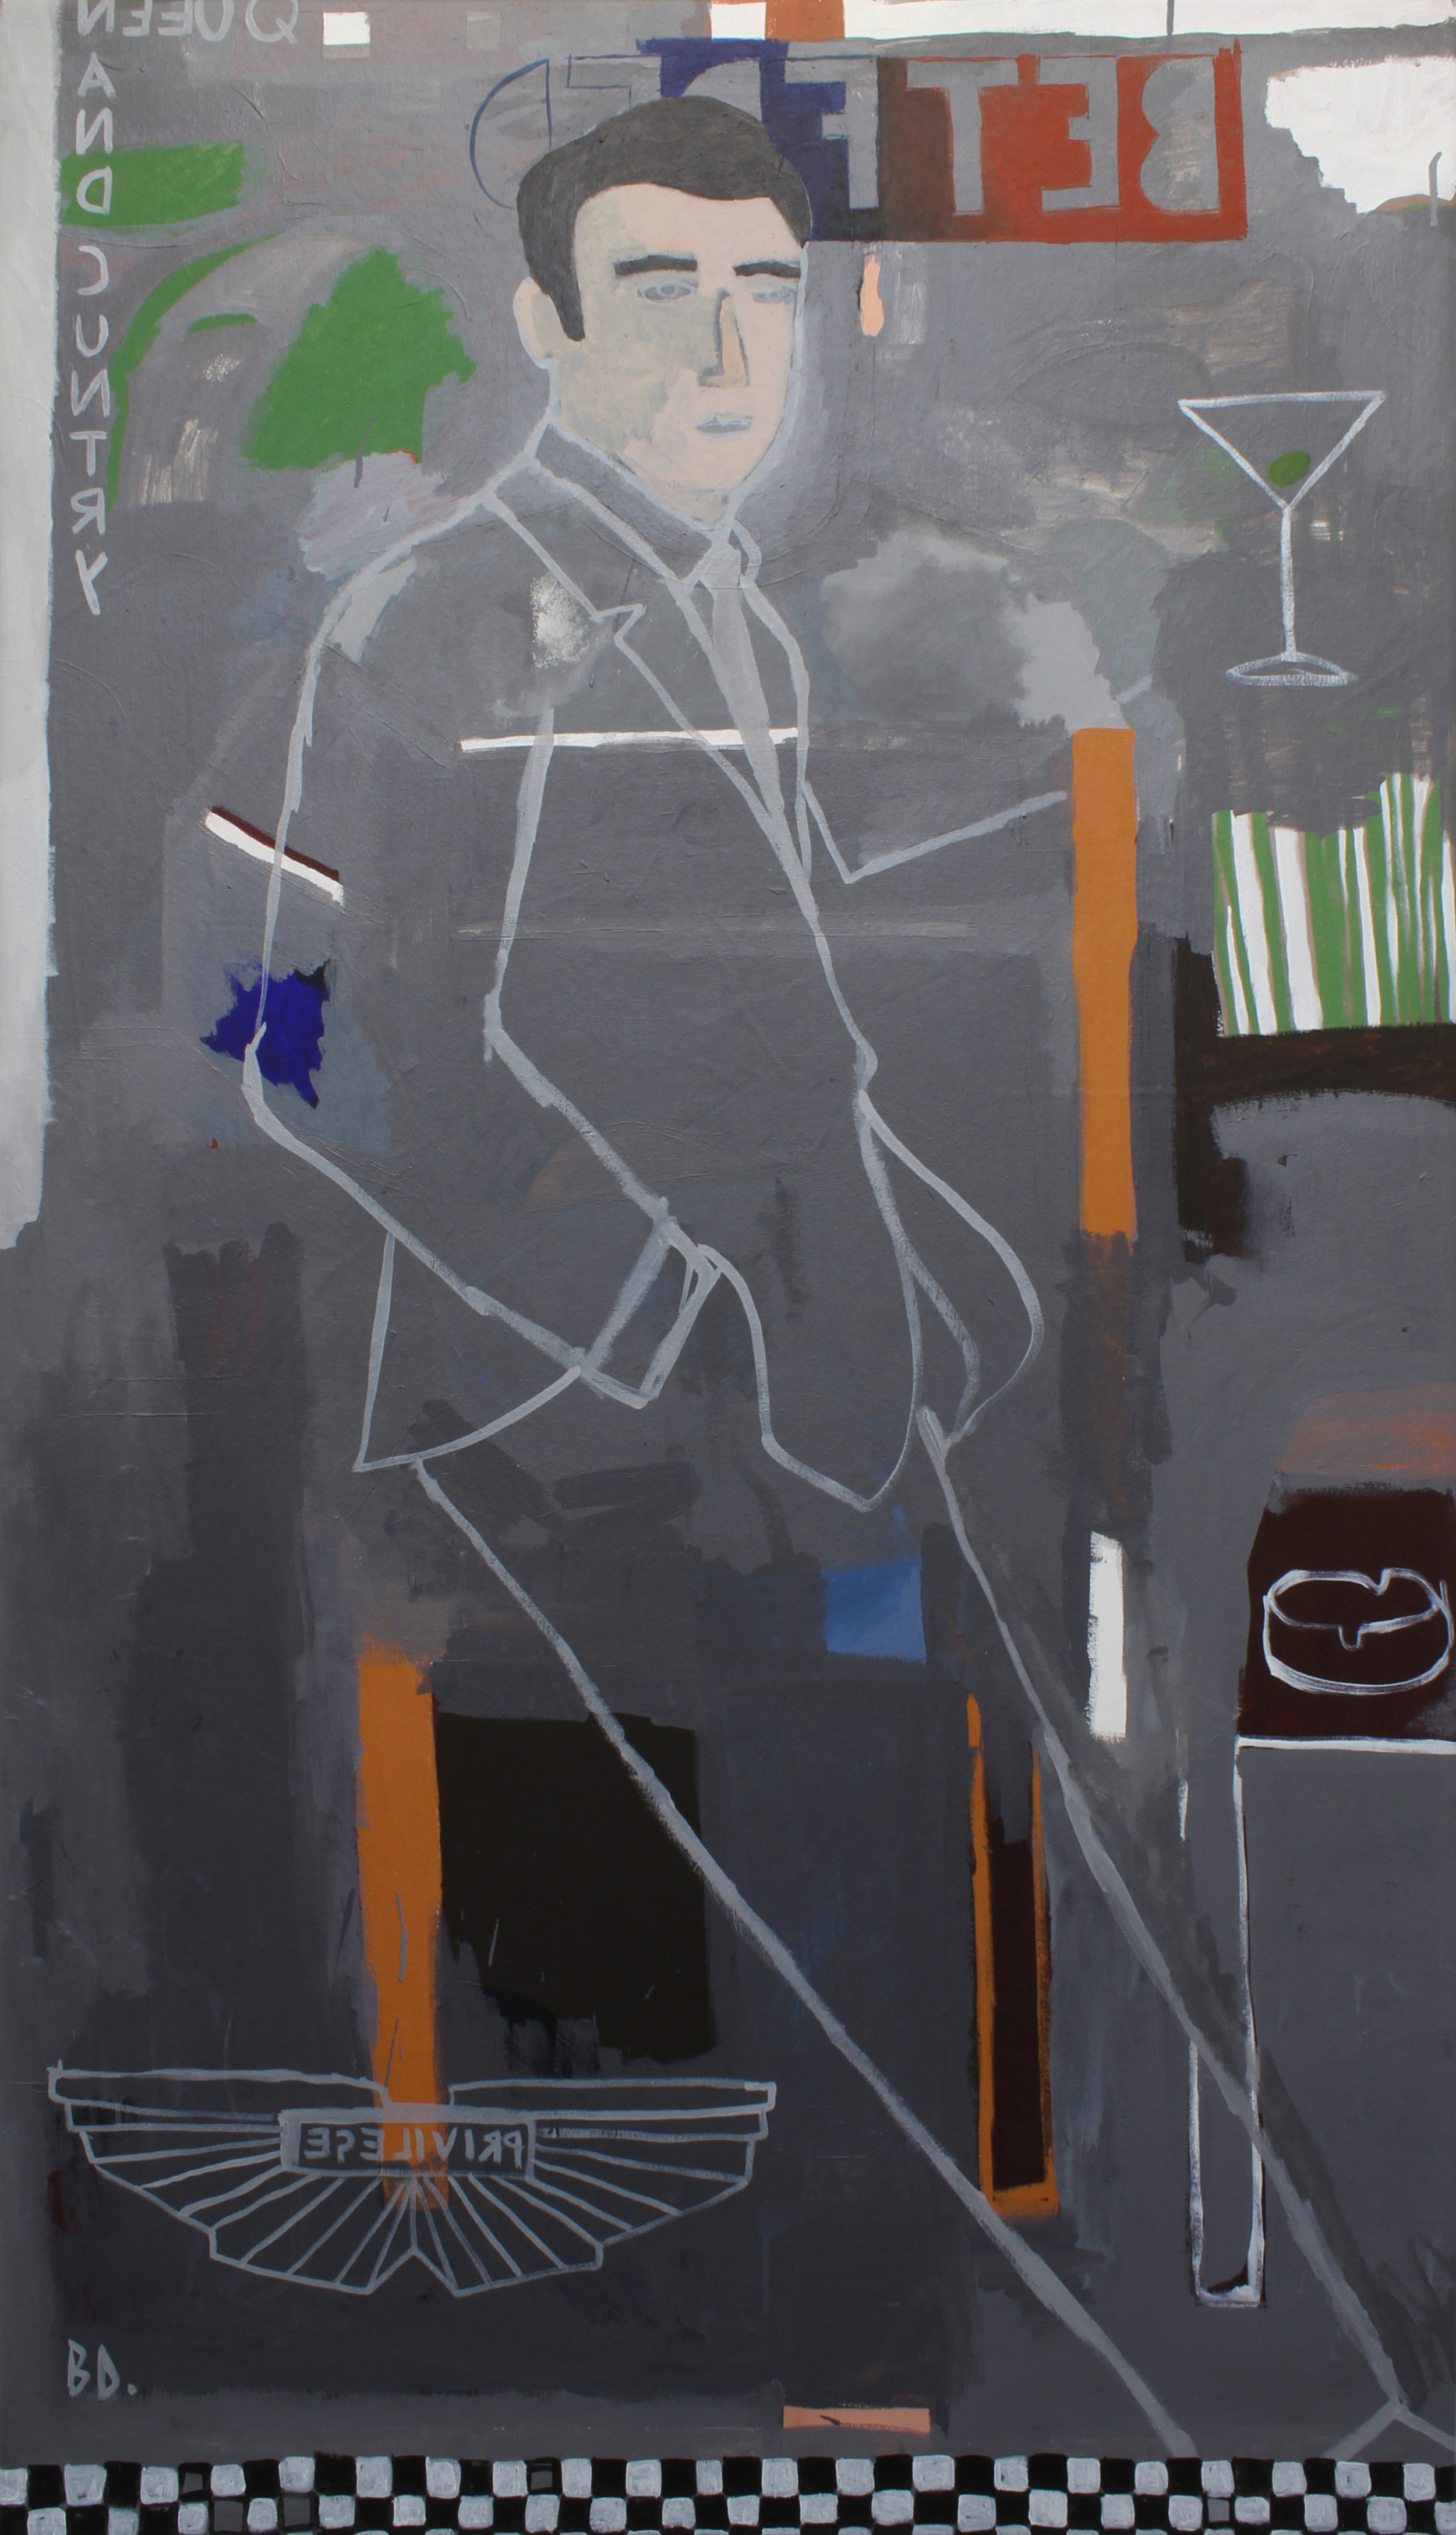 Imperial Nostalgia - Grey Britain (Just Another Murderous Toff)  165 x 95cm  2019